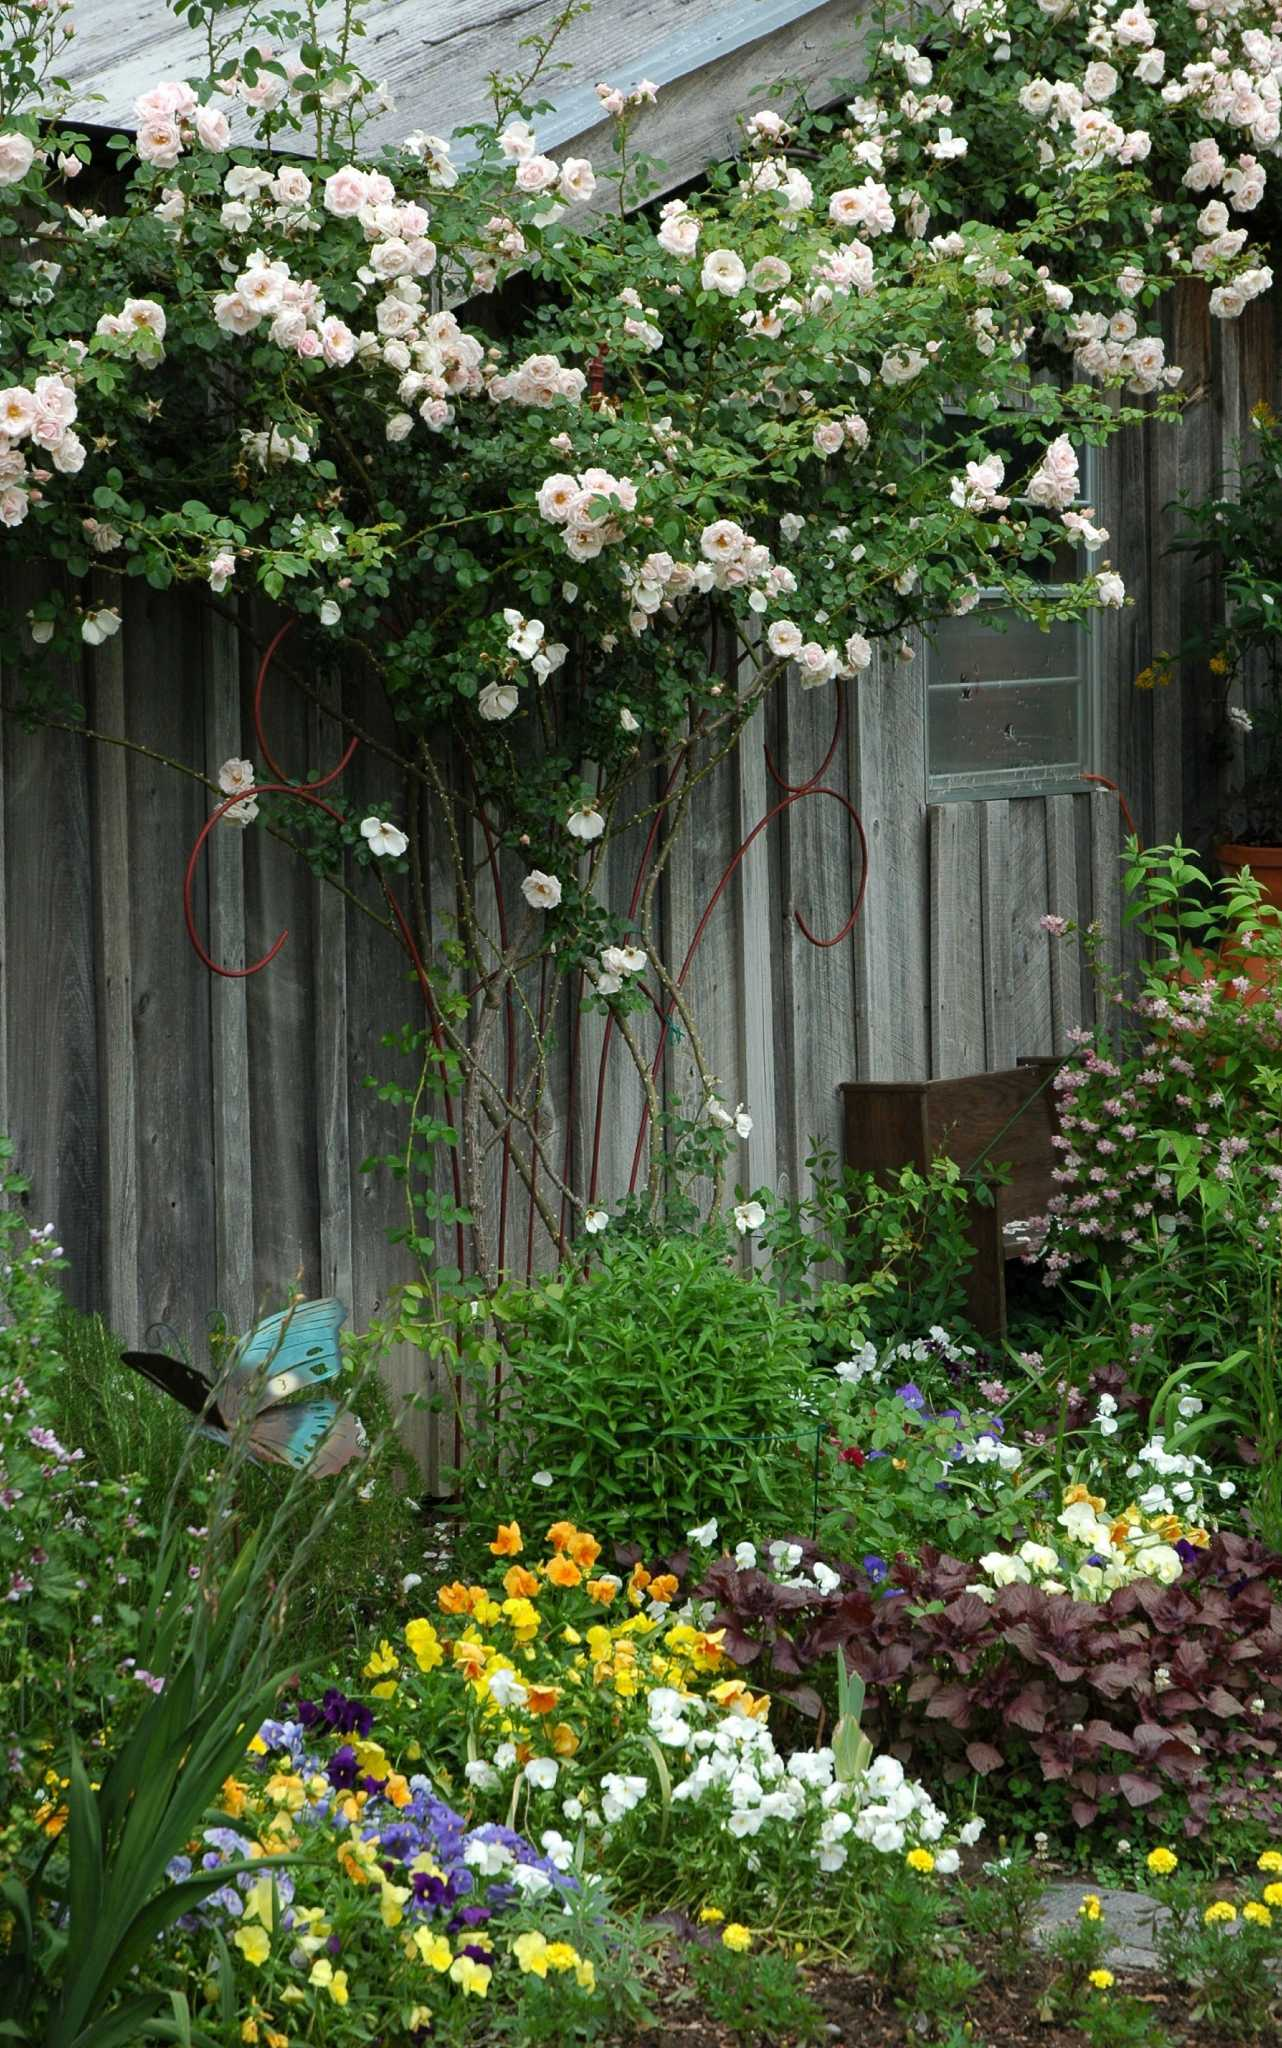 Ho/how to take care of climbing roses for winter - Ho/how To Take Care Of Climbing Roses For Winter 15